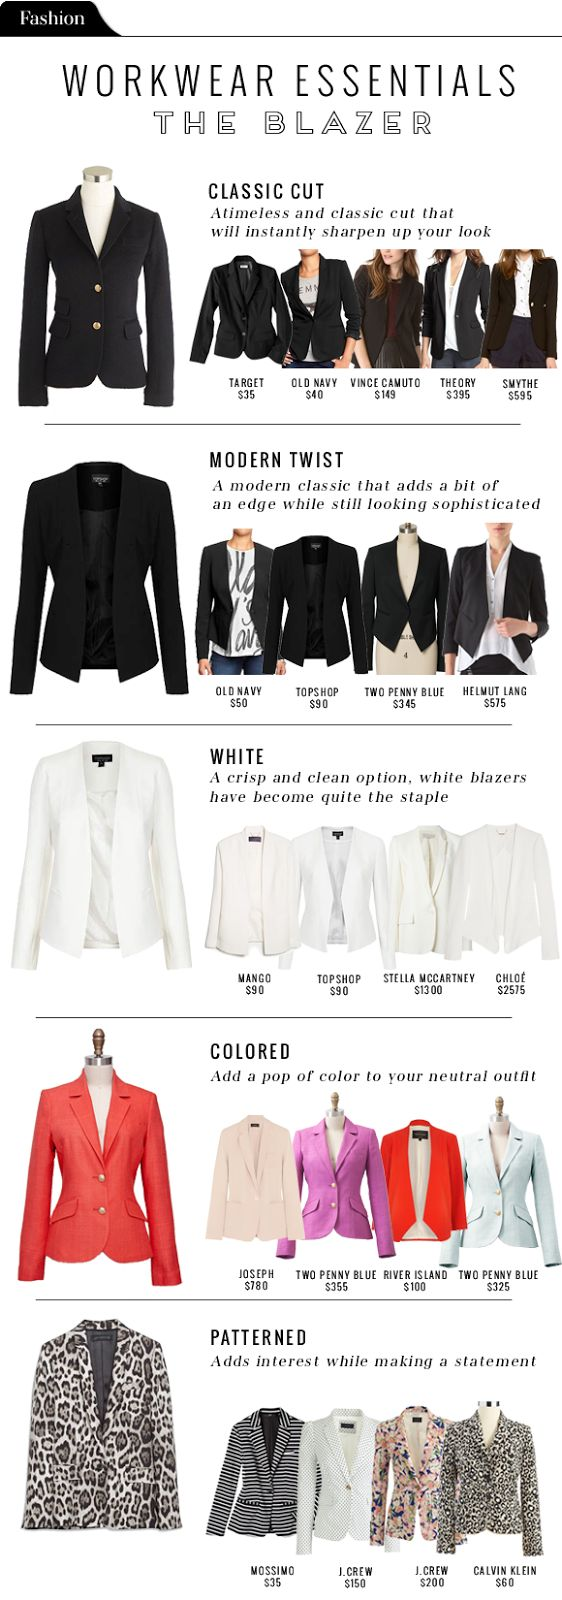 Fashion File: Workwear essentials - The Blazer - The Vault Files